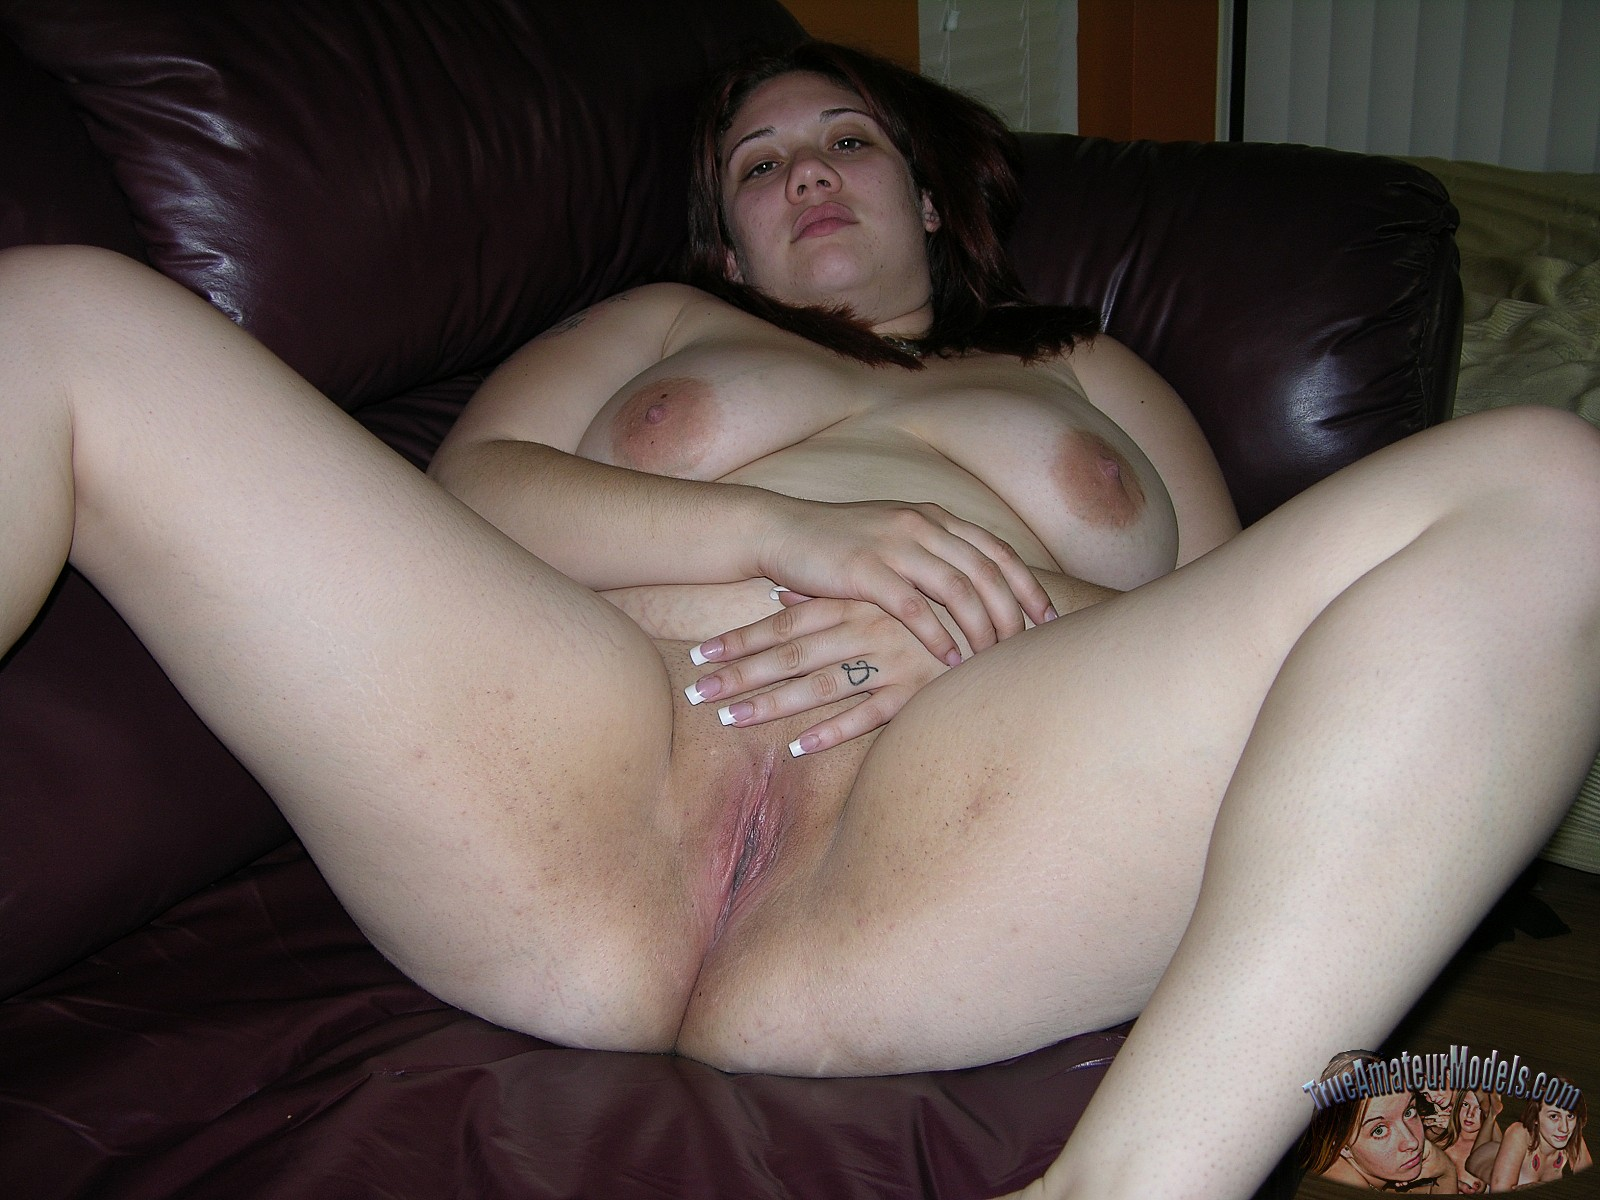 Amateur thick girls naked